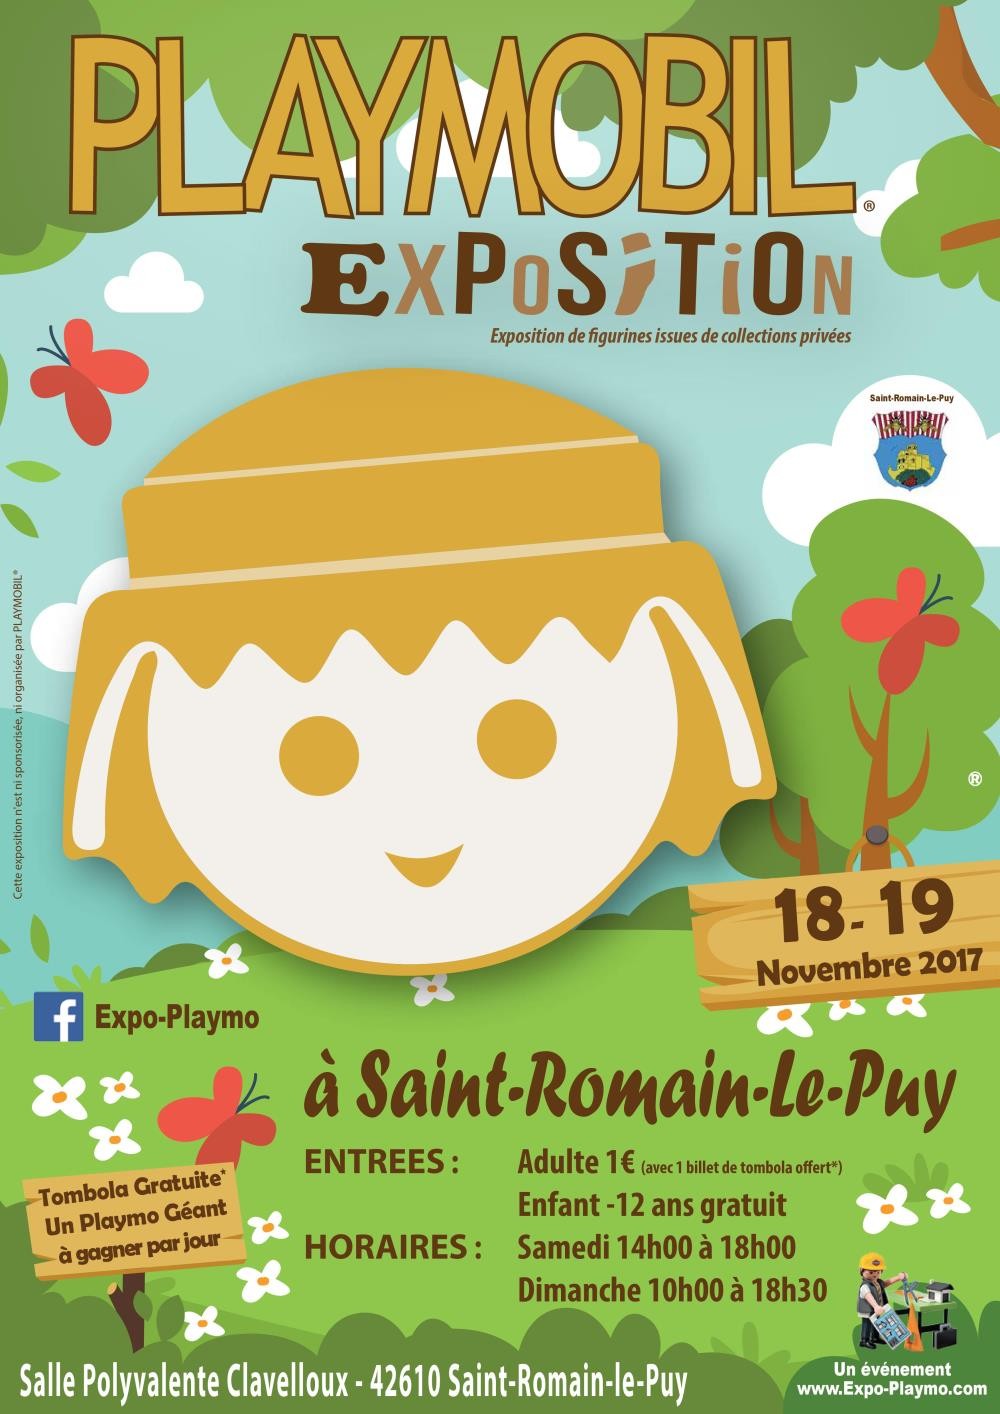 Exposition playmobil saint romain le puy expo playmo web